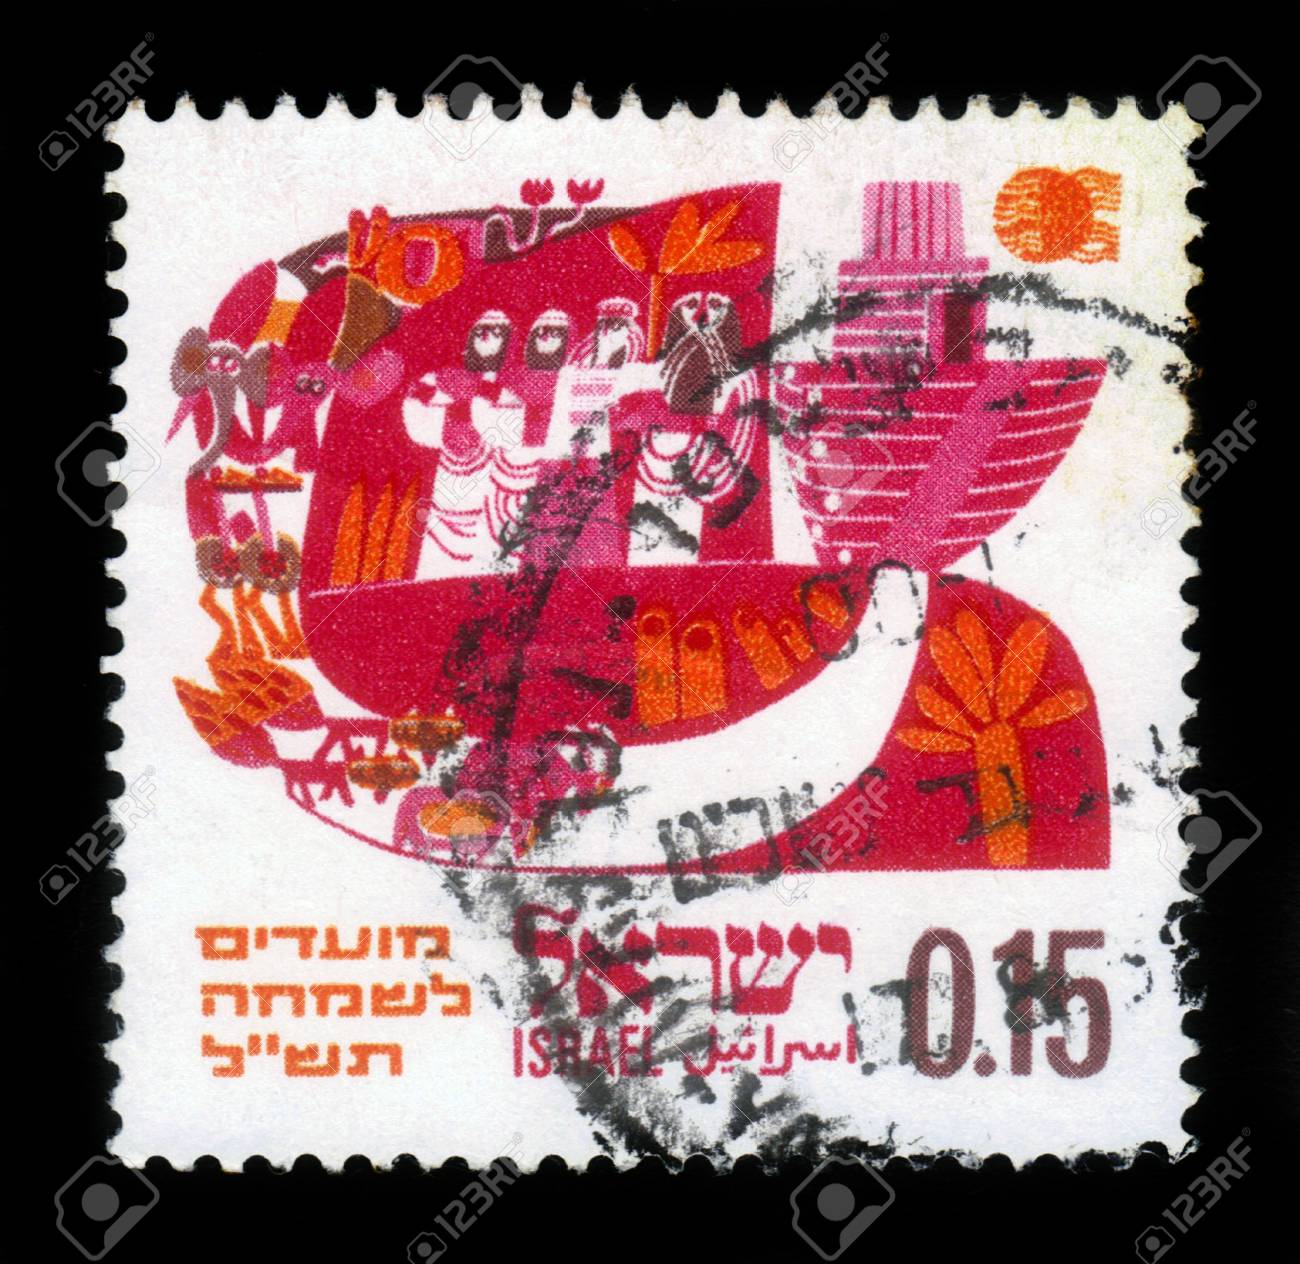 Israel - circa 1969: A stamp printed in Israel, shows the story of the Flood: animals boarding the ark , devoted to Joyous Festivals 5730, circa 1969 Stock Photo - 18171445